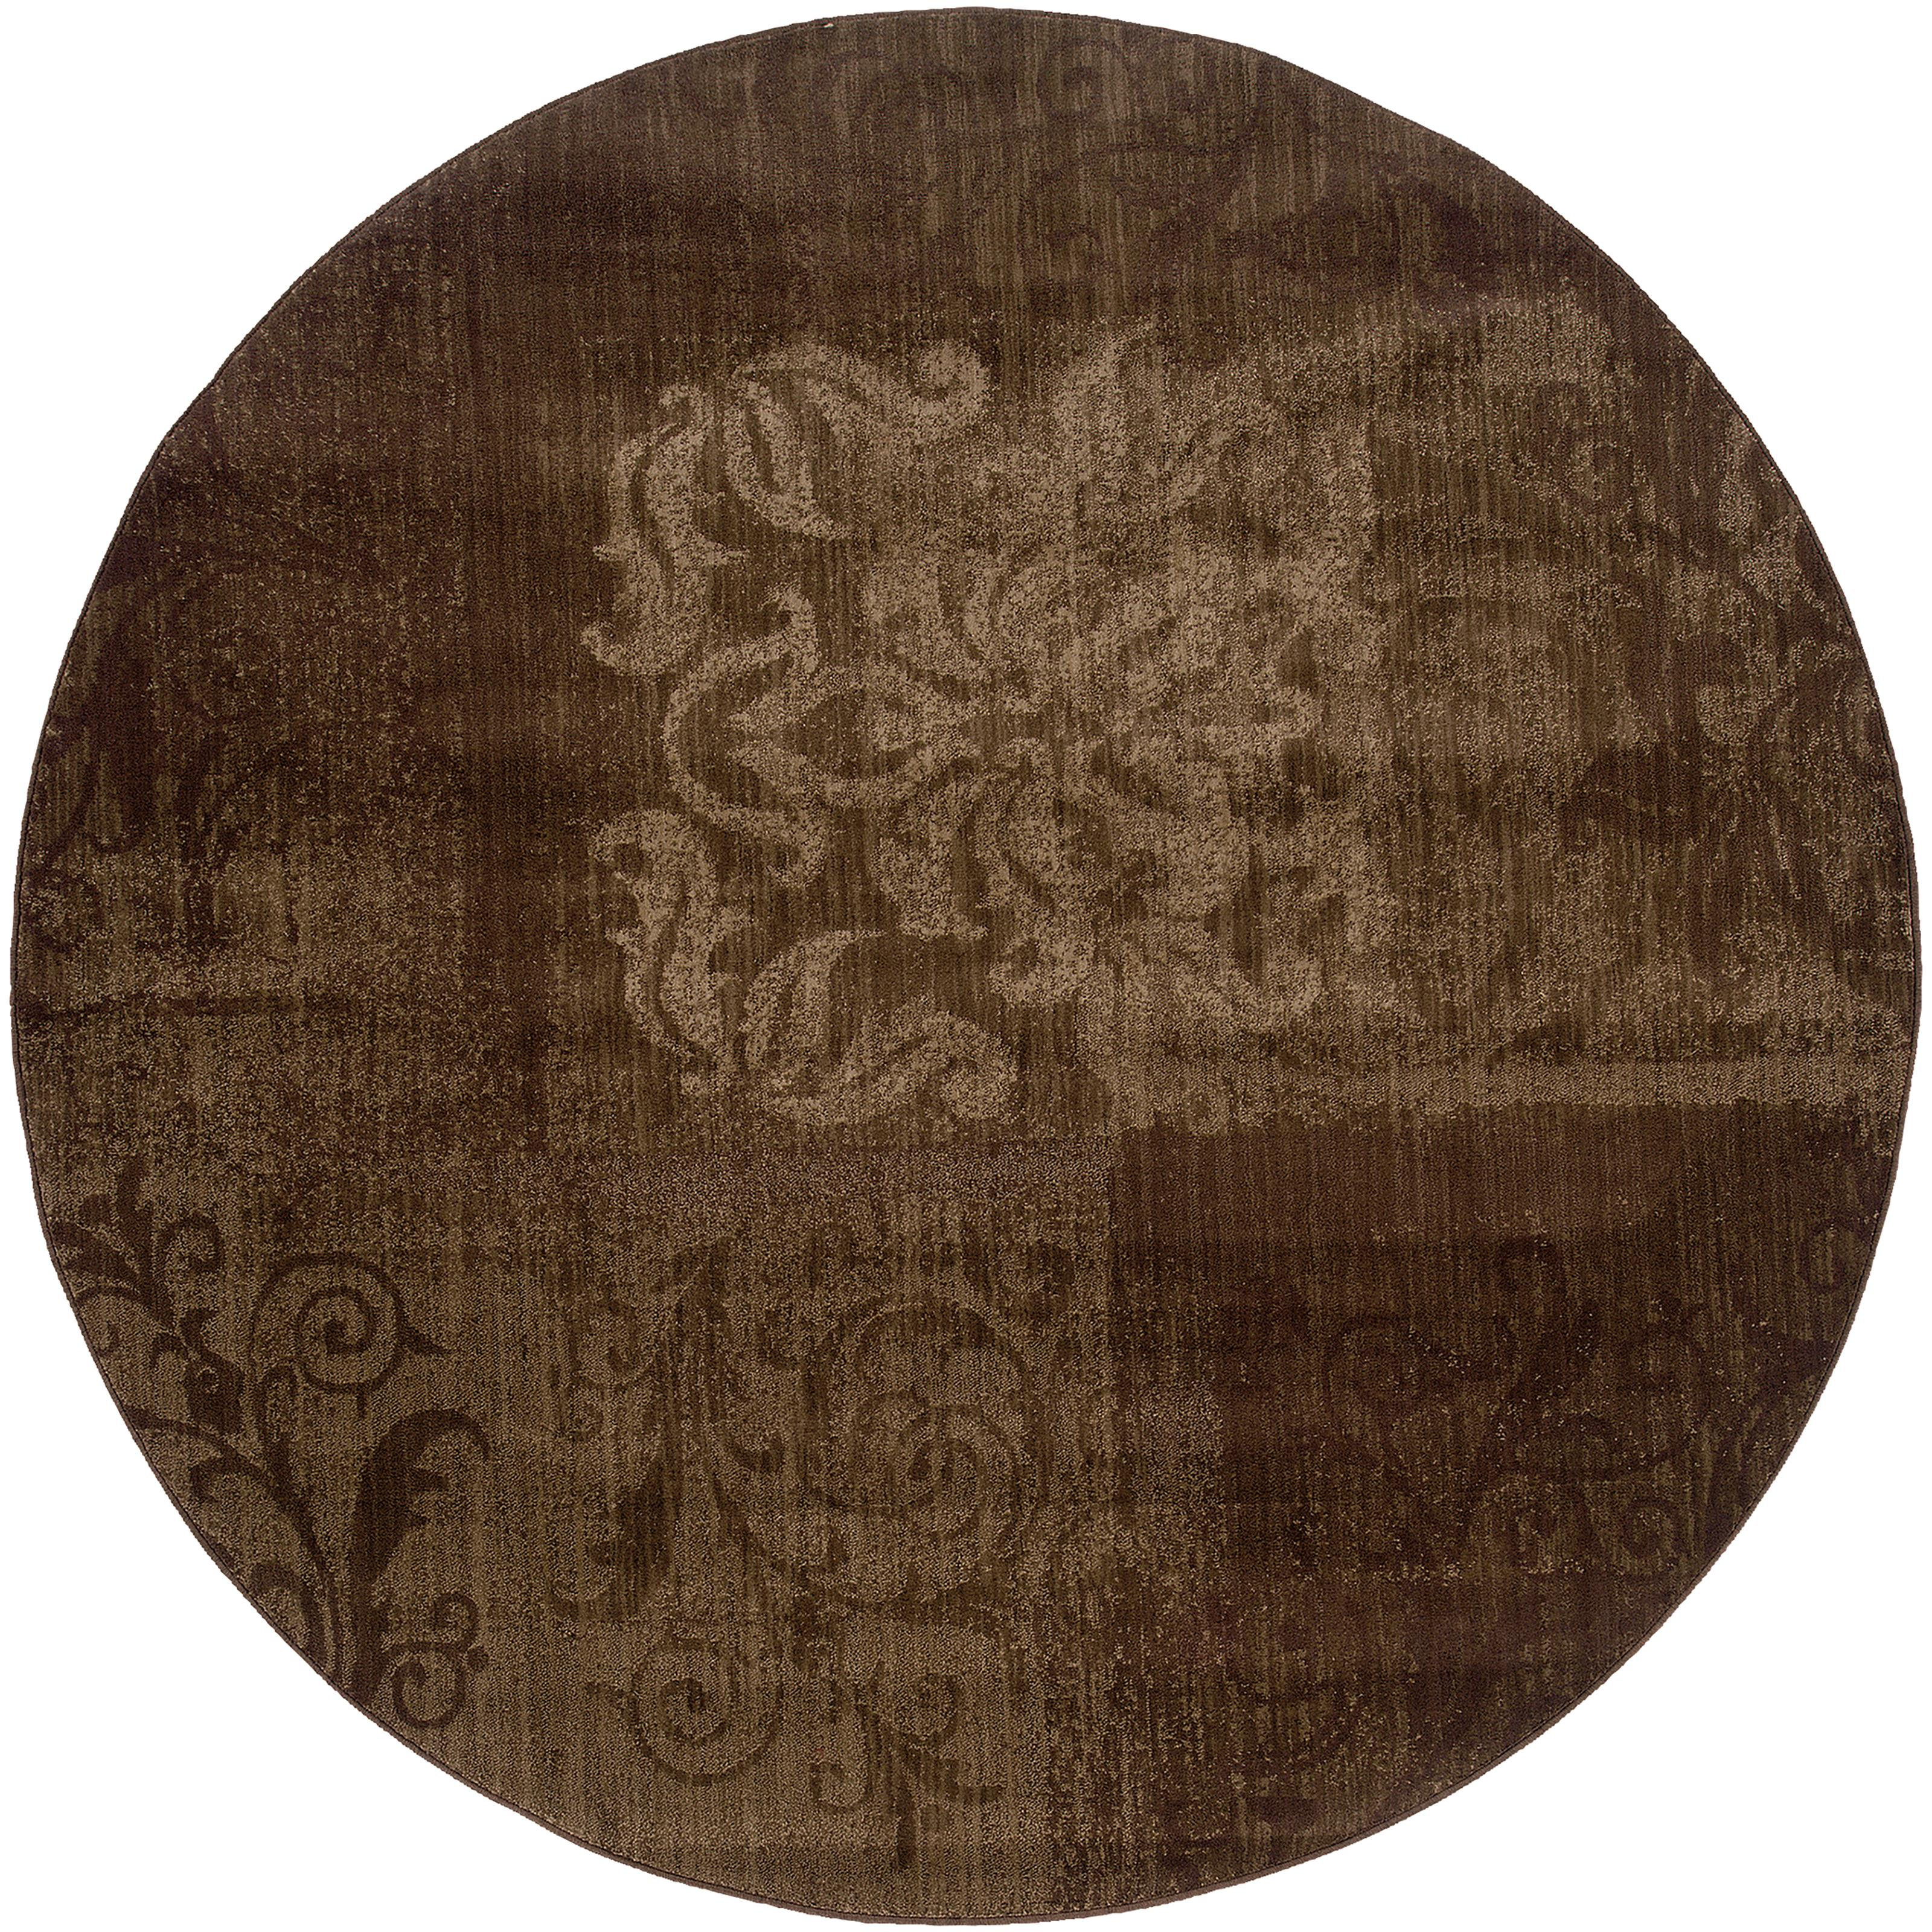 "Oriental Weavers Allure 7' 8"" Rug - Item Number: A060B1235RDST"